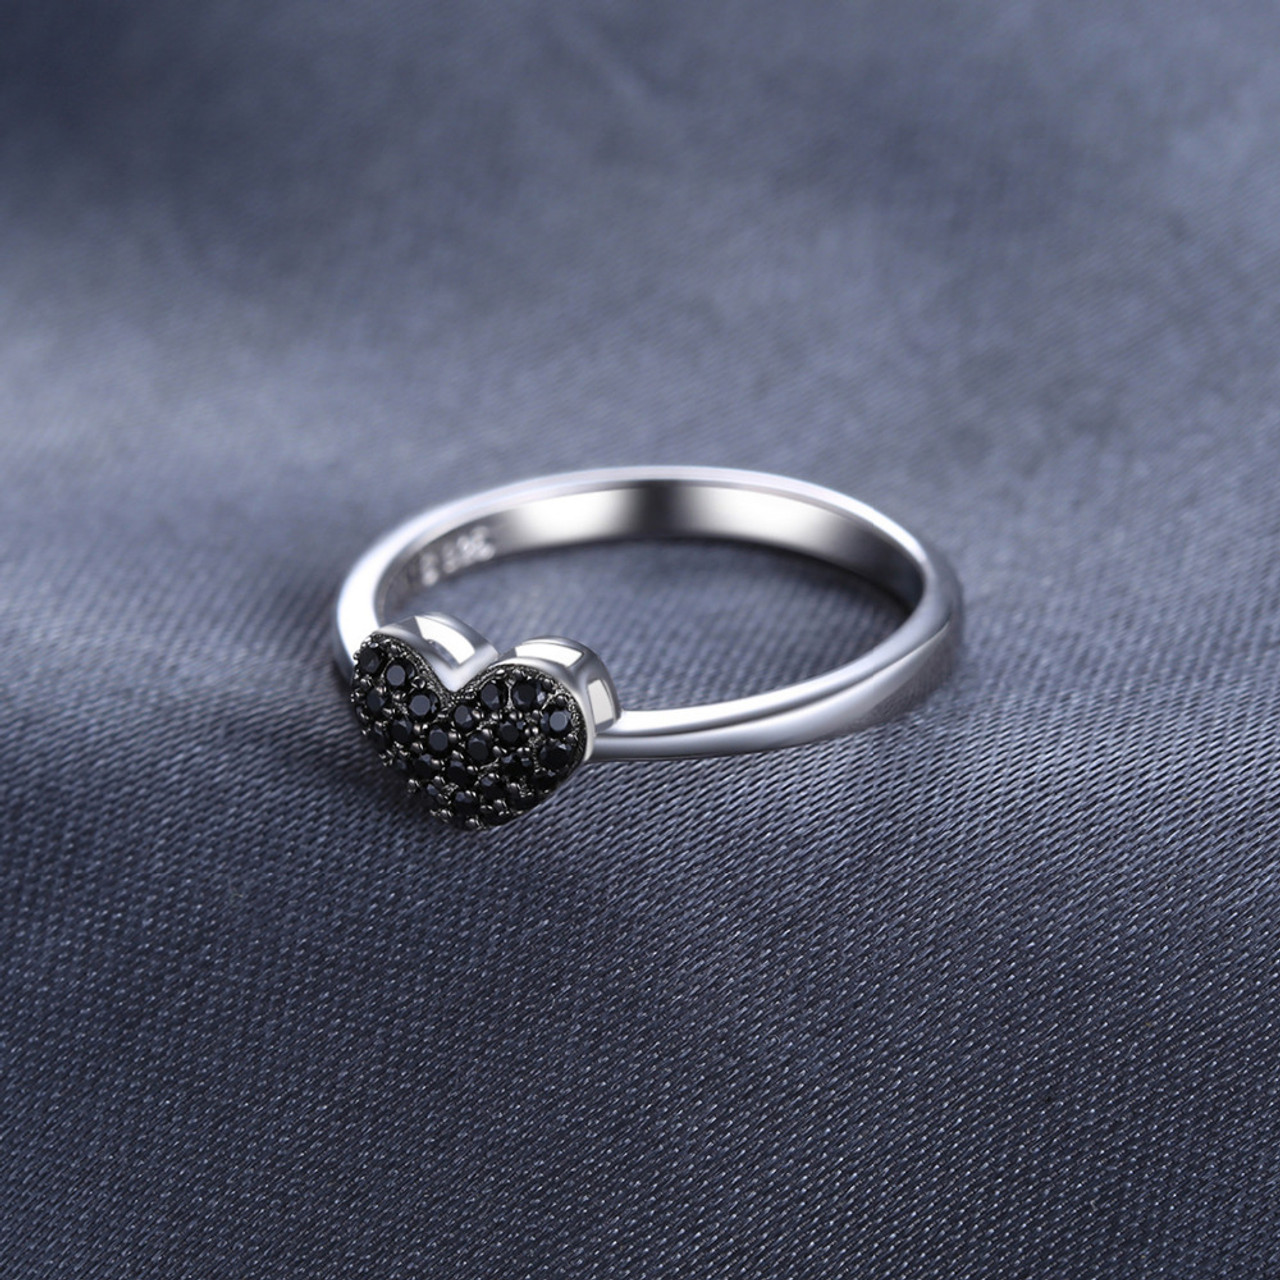 75f853a47bb9 ... JewelryPalace Fashion 0.14ct Natural Black Spinel Love Heart Rings For Women  100% 925 Sterling ...